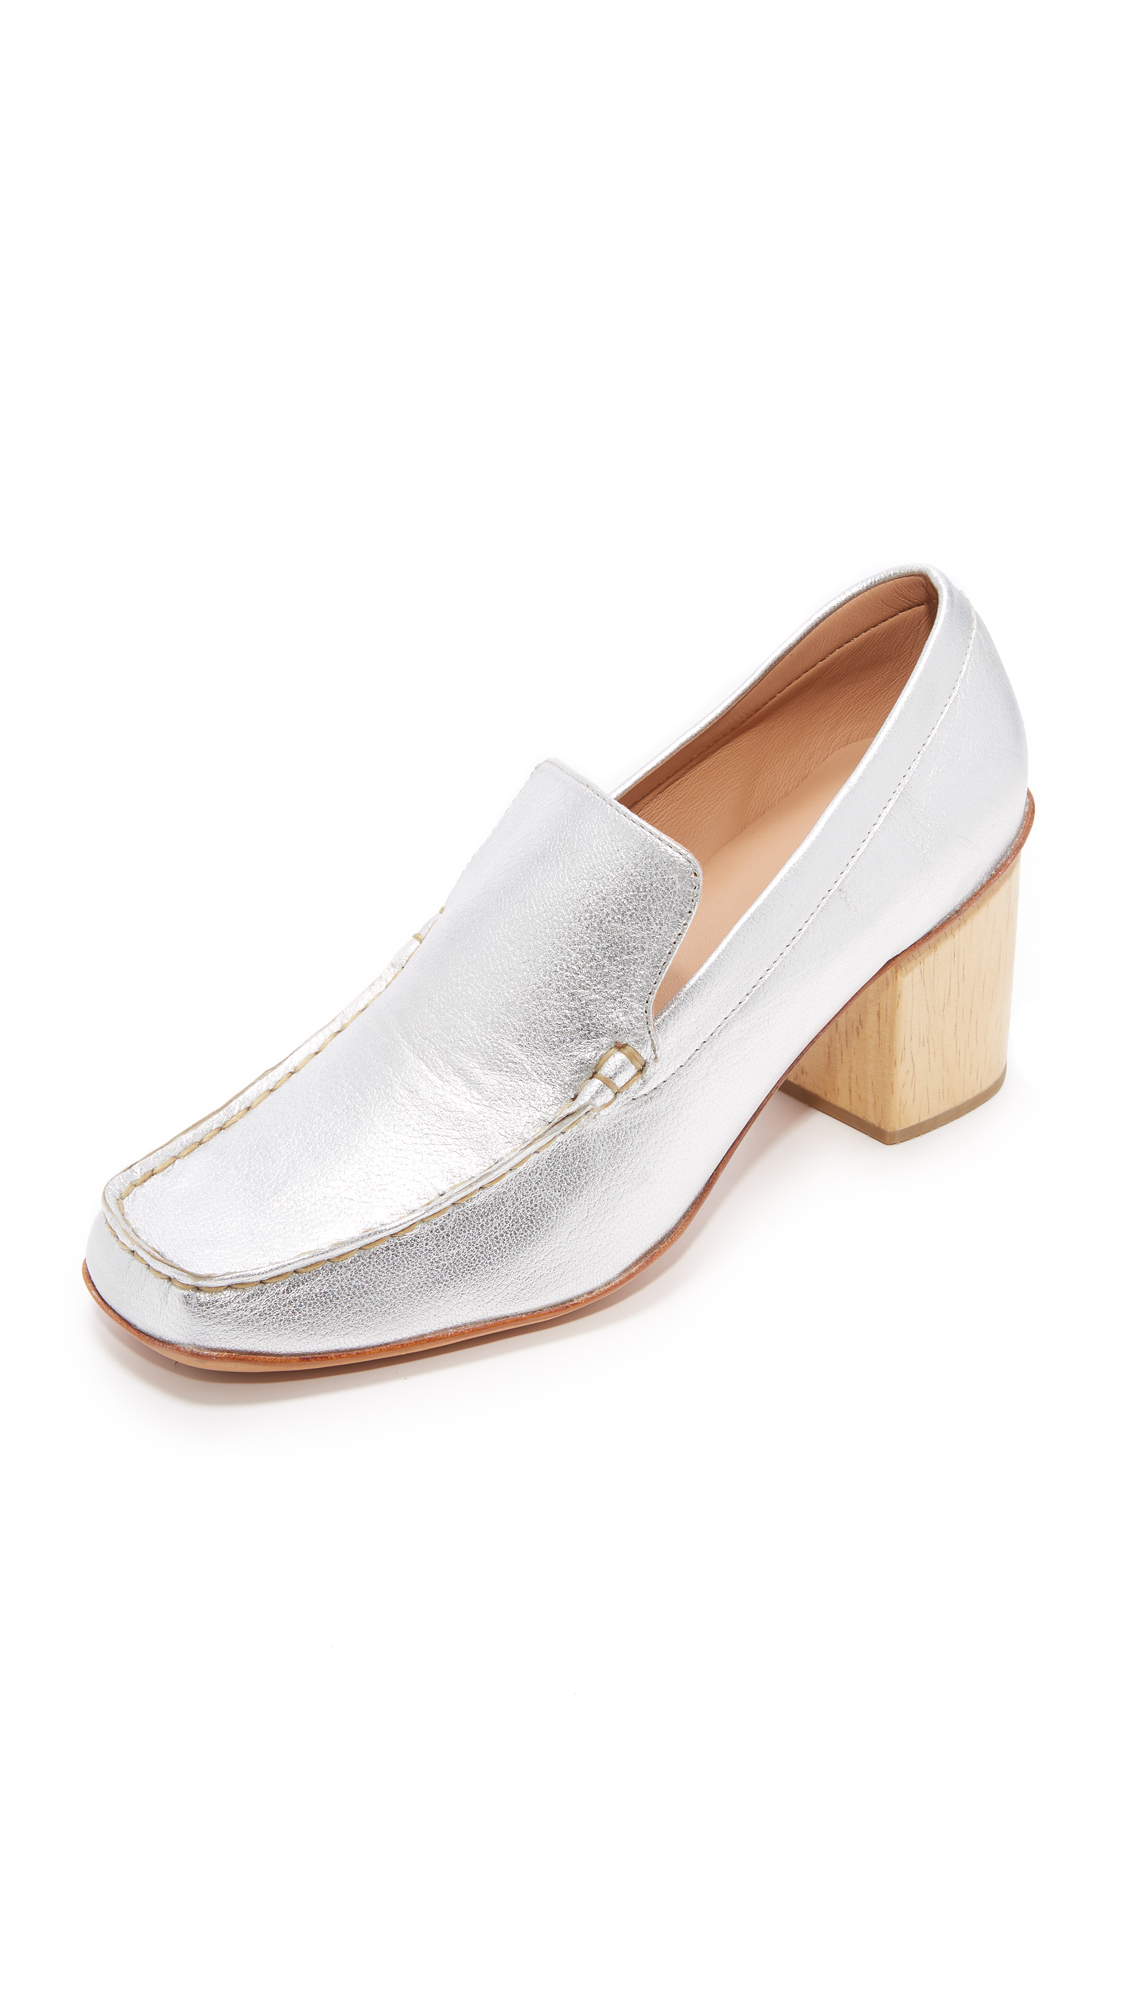 Rachel Comey Dart Loafer Pumps - Silver